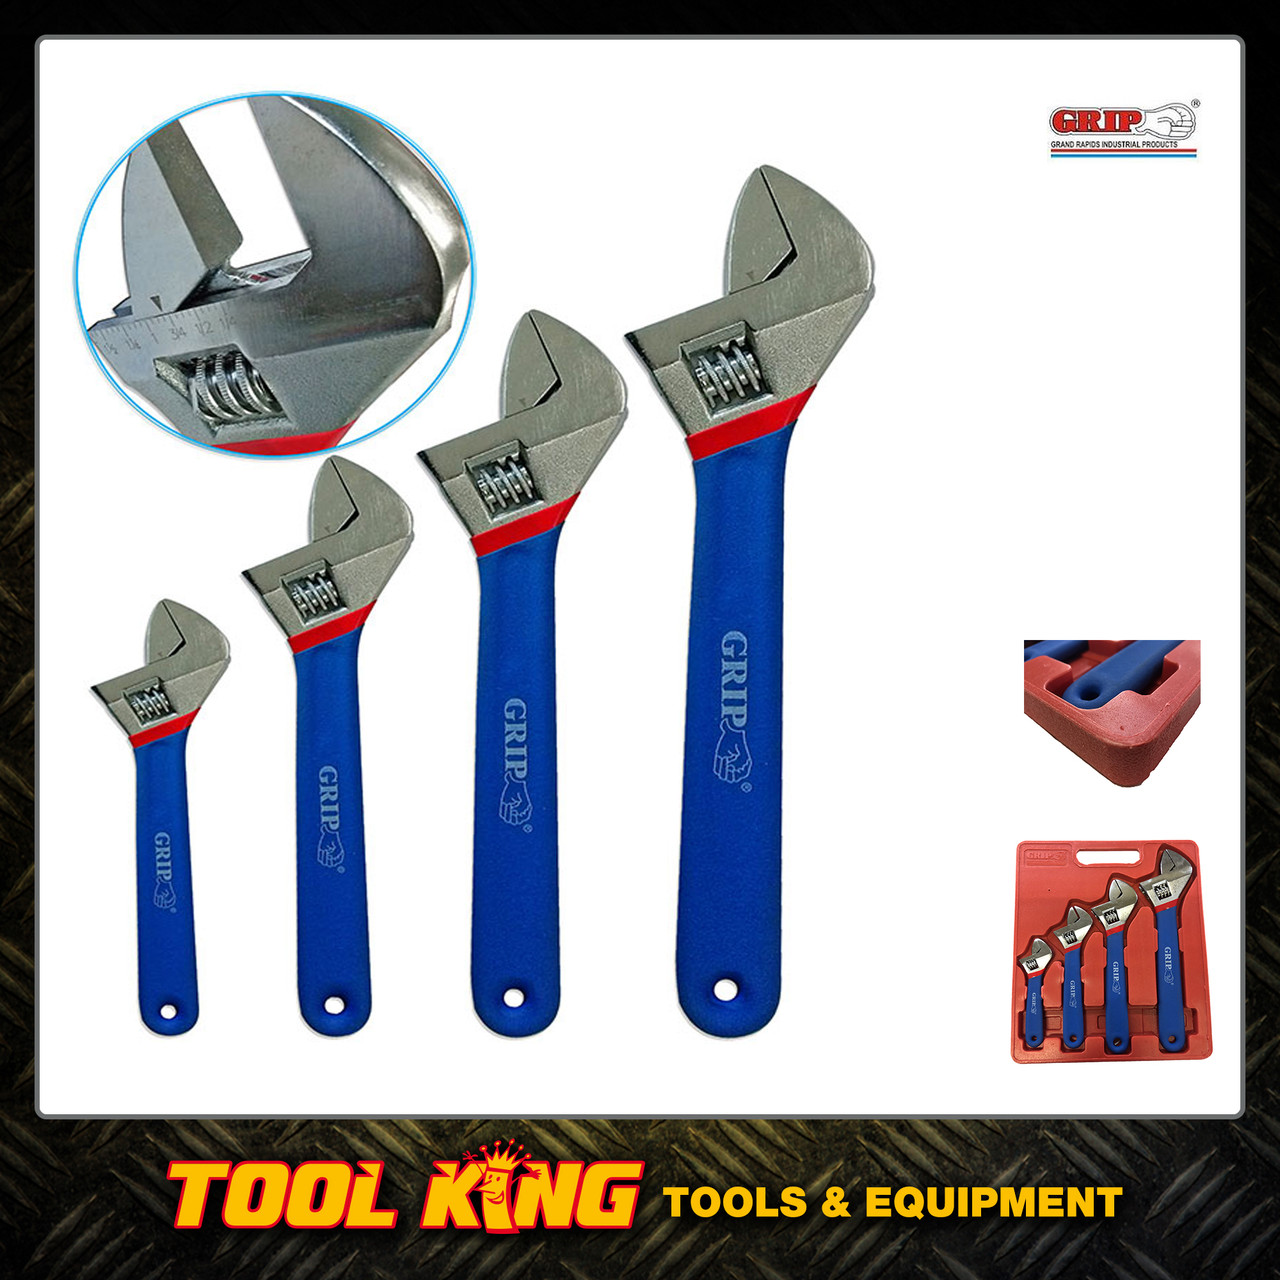 4pc Adjustable wrench shifter set